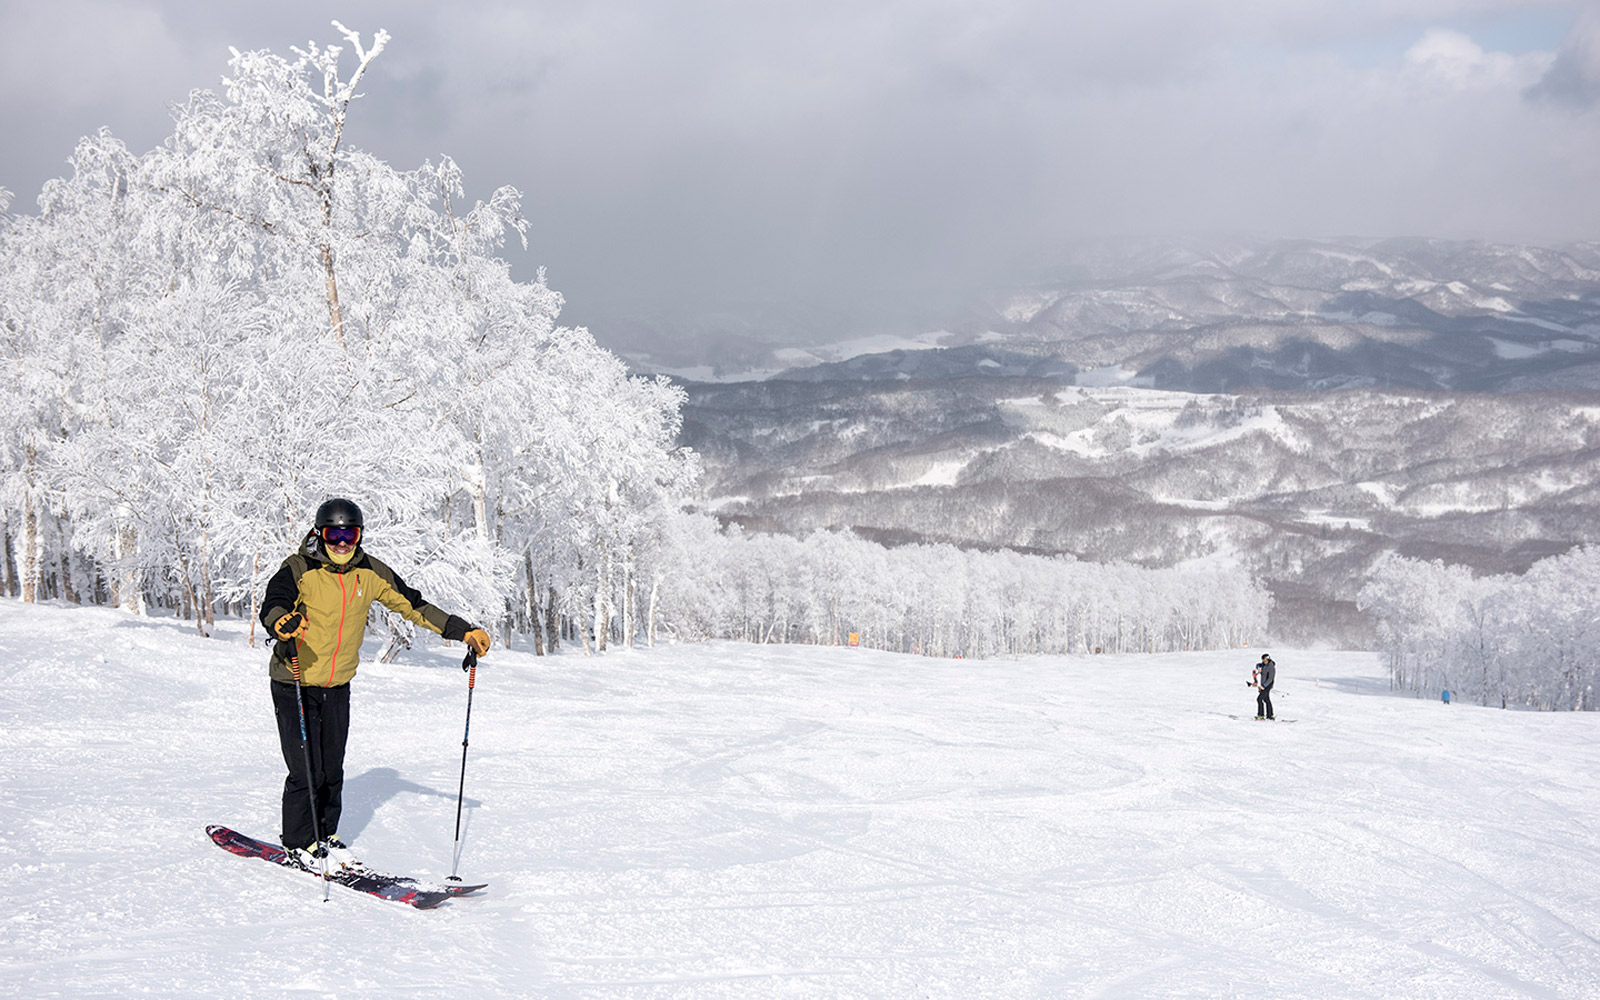 How to Plan the Ultimate Japan Ski Trip